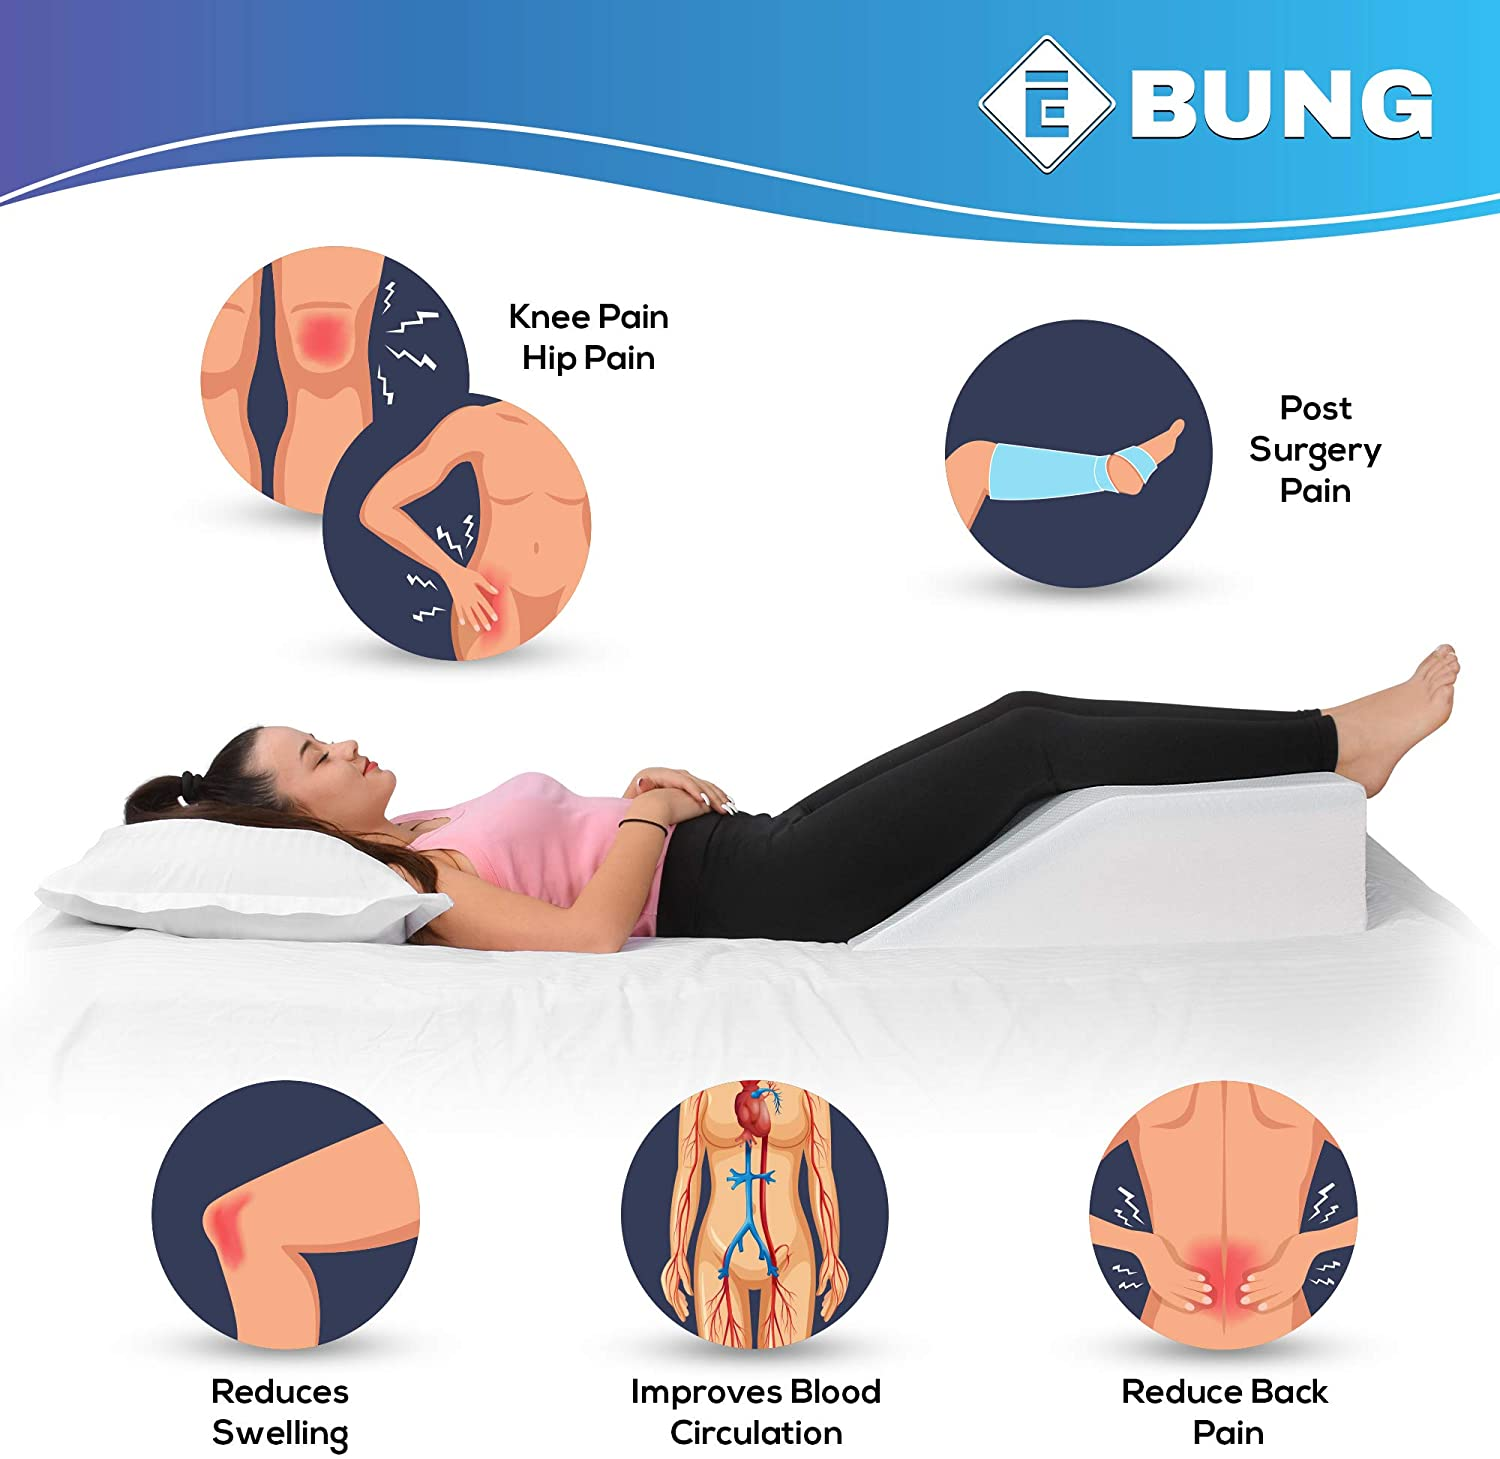 Leg Elevation Pillow with Cooling Gel - Memory Foam Leg Rest - Elevating Foam Wedge- Relieves Leg Pain, Hip and Knee Pain, Improves Blood Circulation, Reduces Swelling - Breathable, Washable Cover: Home & Kitchen